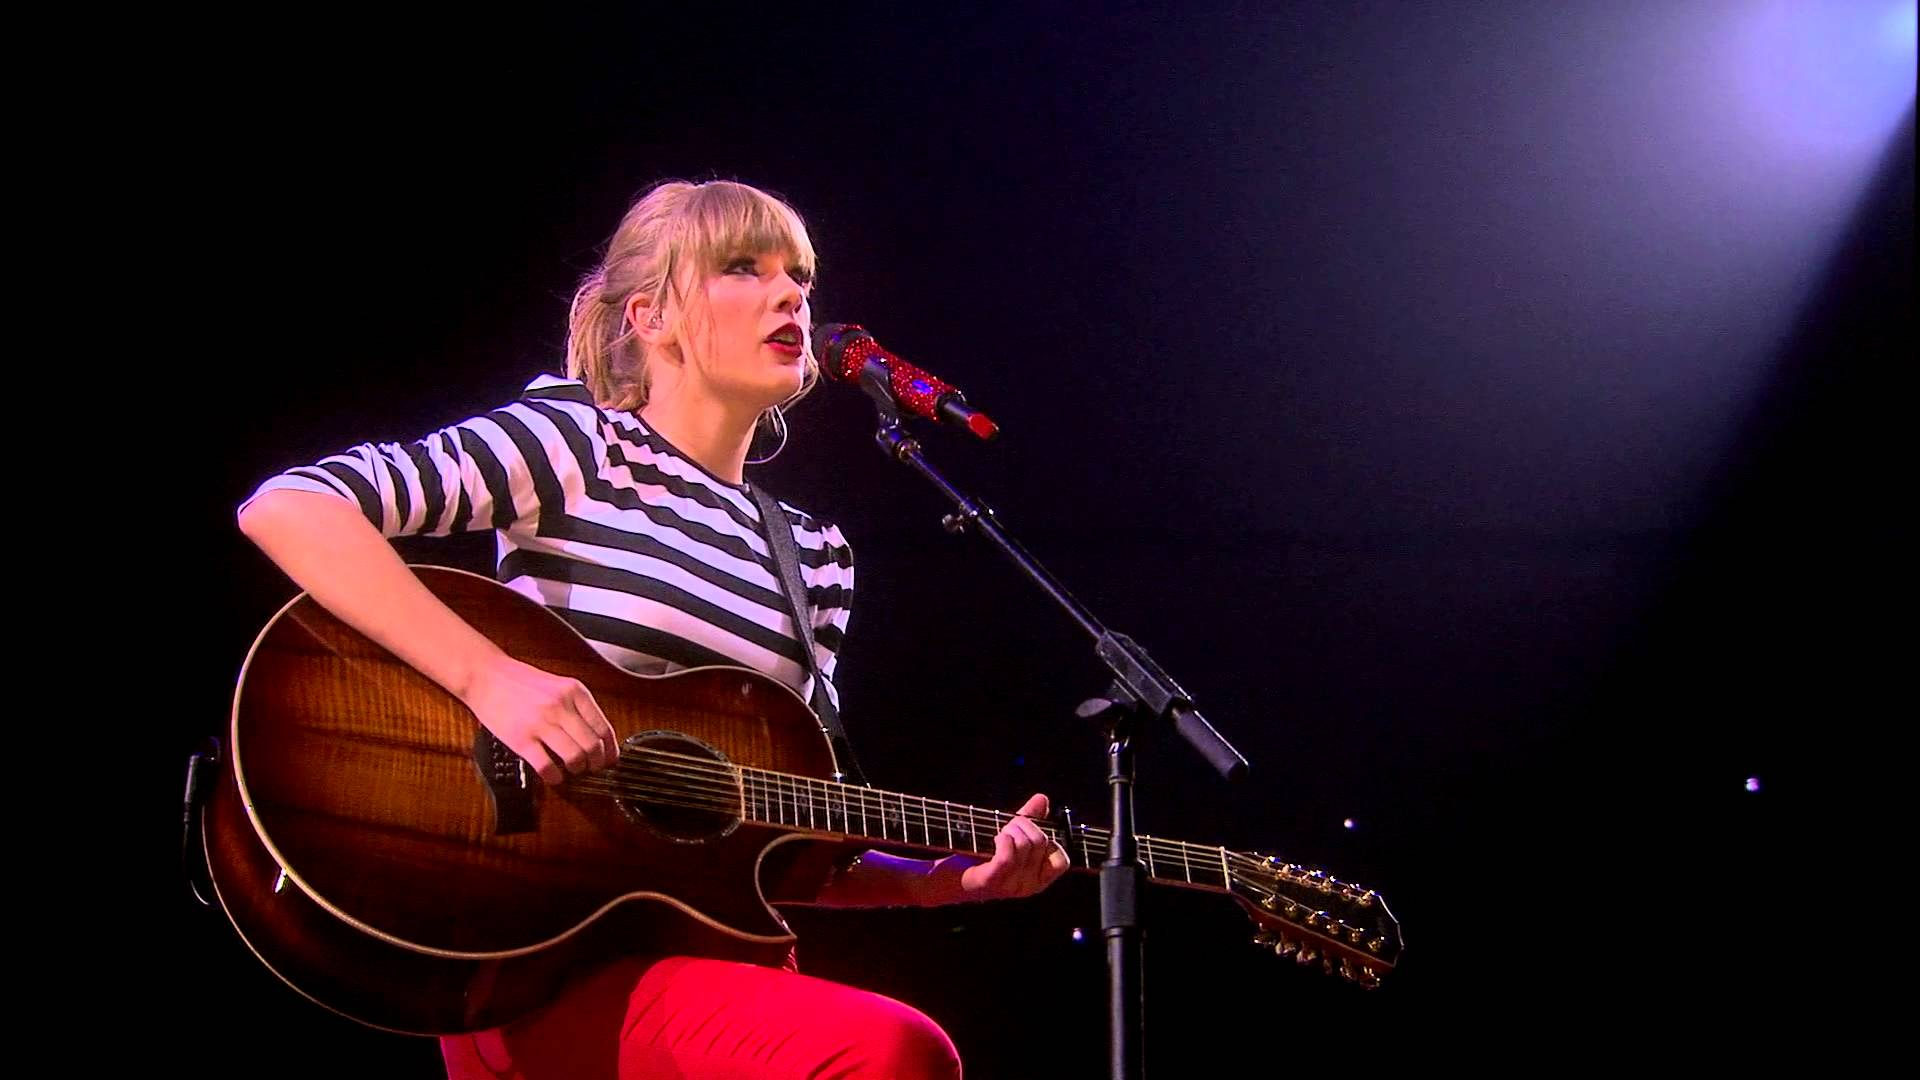 Cute Marvel Phone Wallpaper Download Taylor Swift Live Wallpaper Gallery